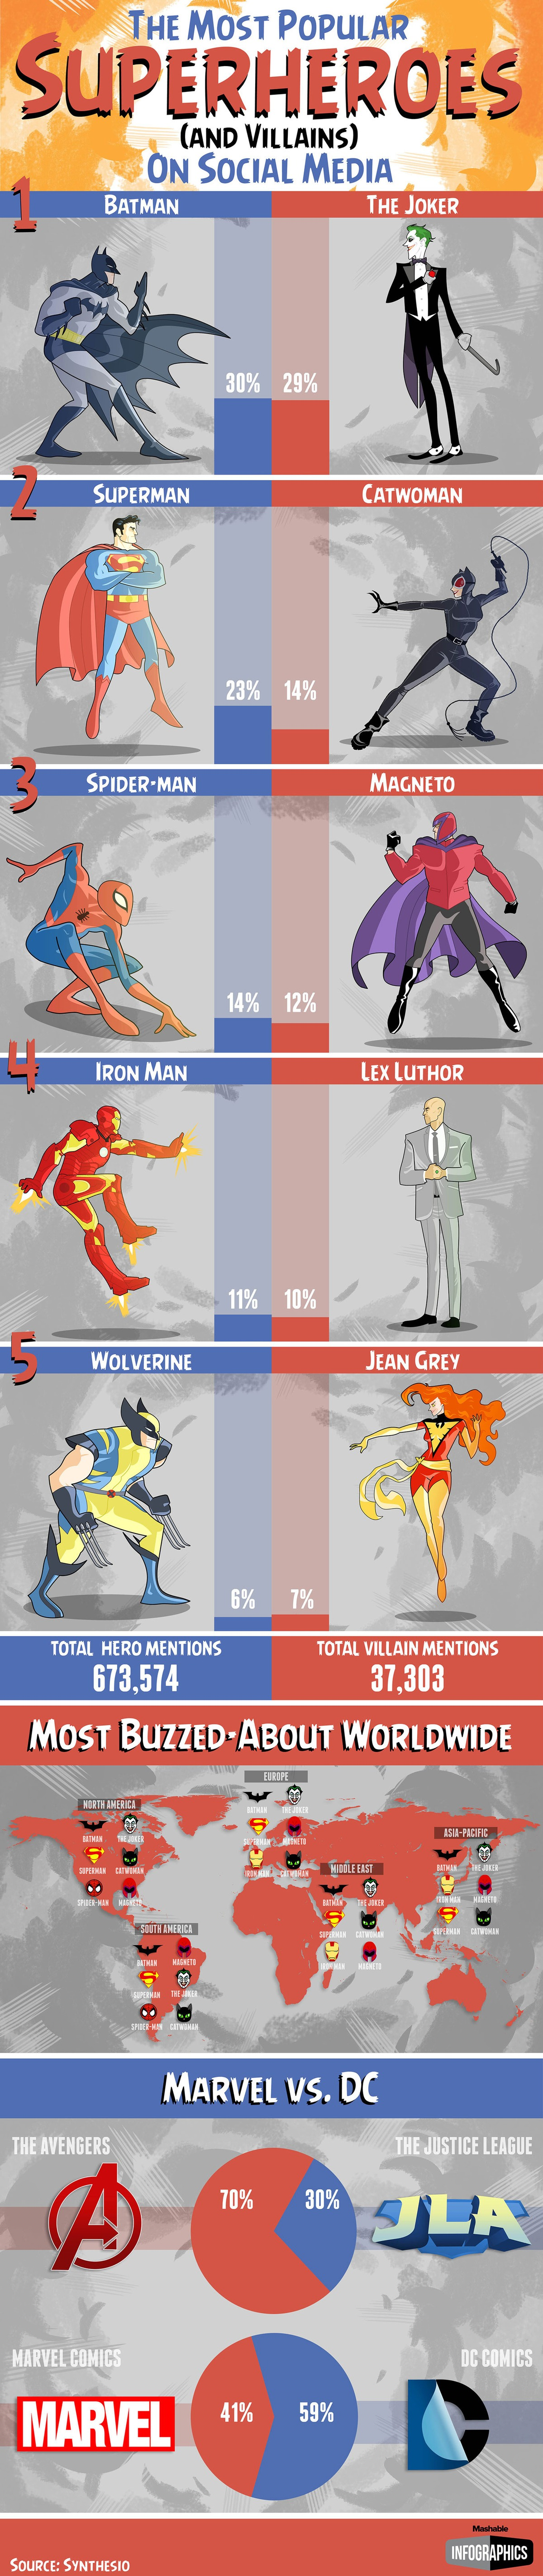 Superheroes and Villains Social Media Popularity